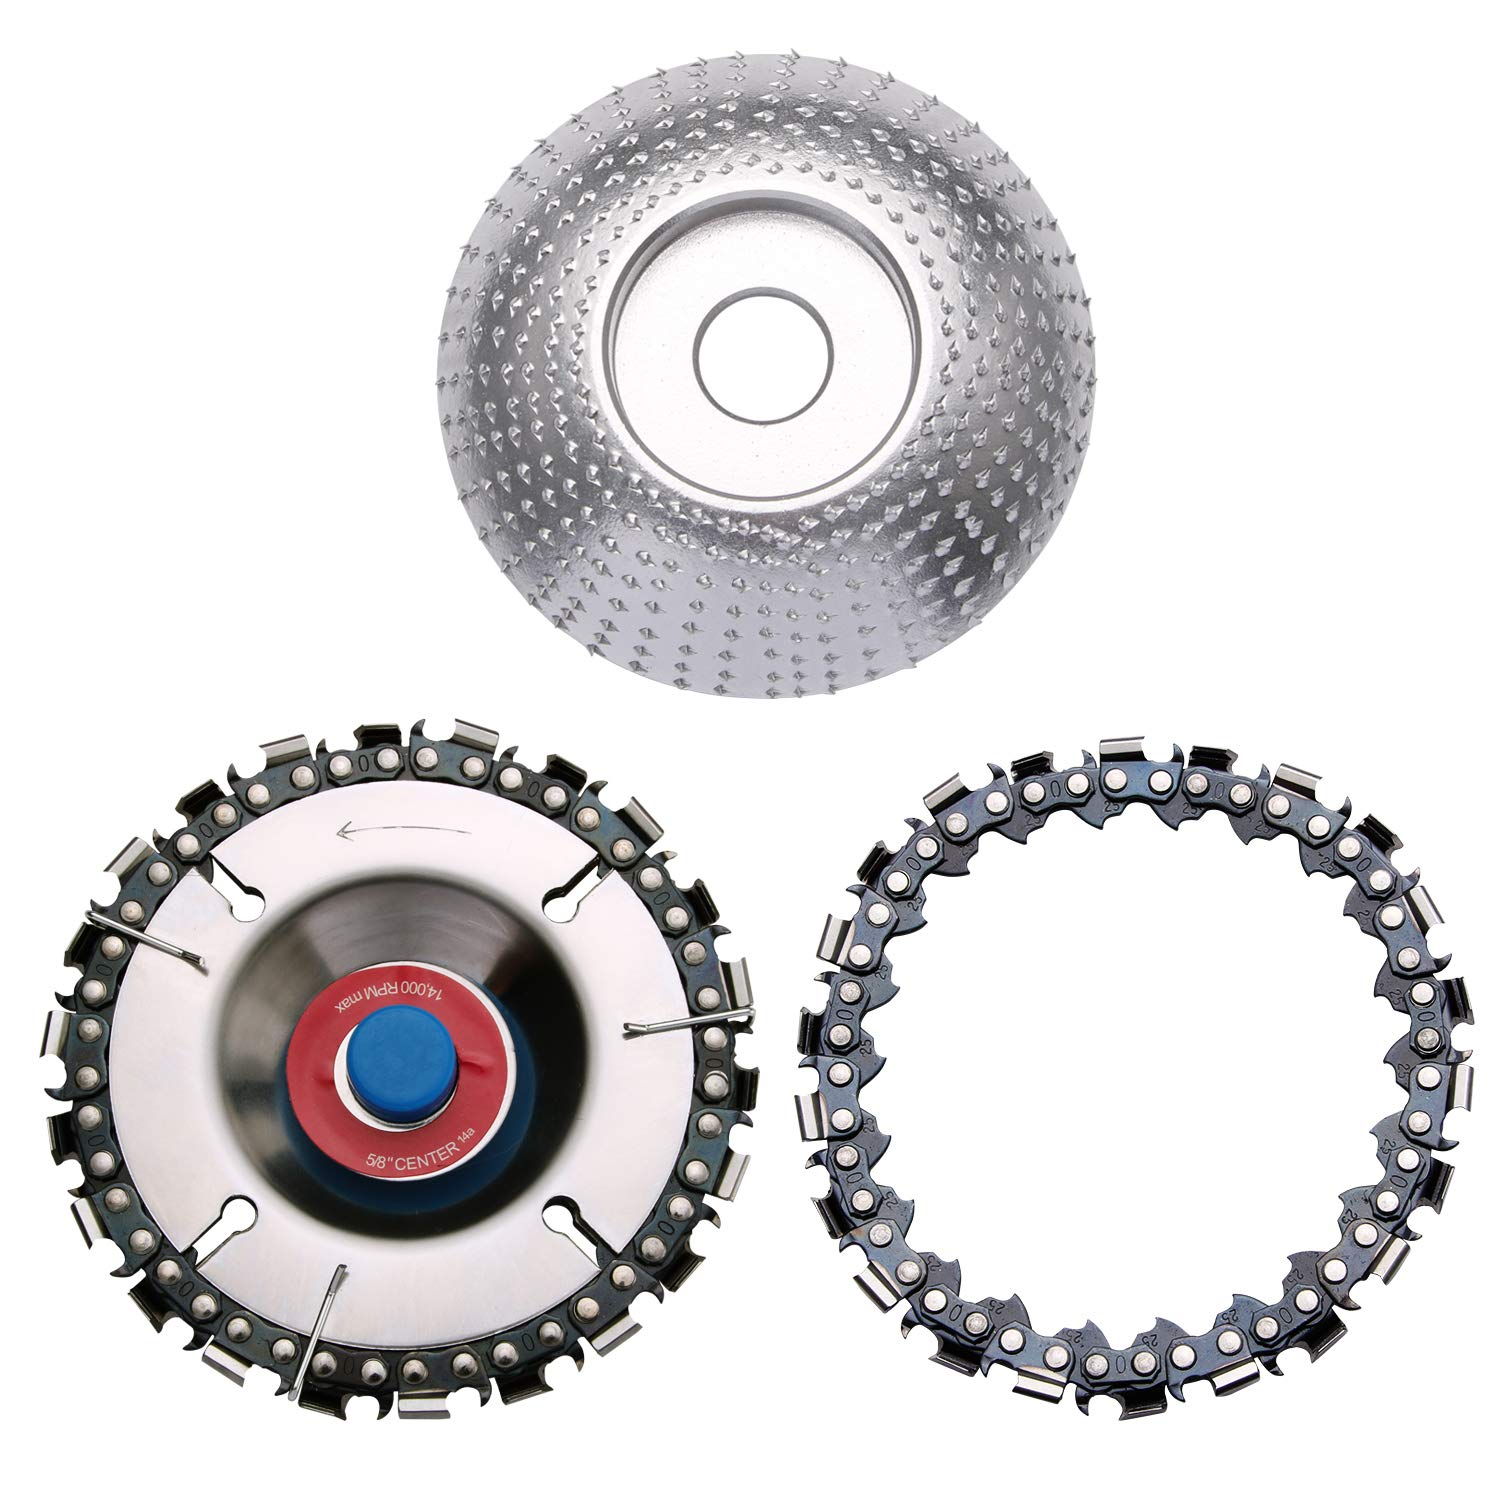 Carving Discs Wood Carving Disc 22-Teeth Steel Blade 4 Inches Angle Grinder Cutting Shaping Woodworking Chain Tool 14000rpm Max ,for 100//115 Angle